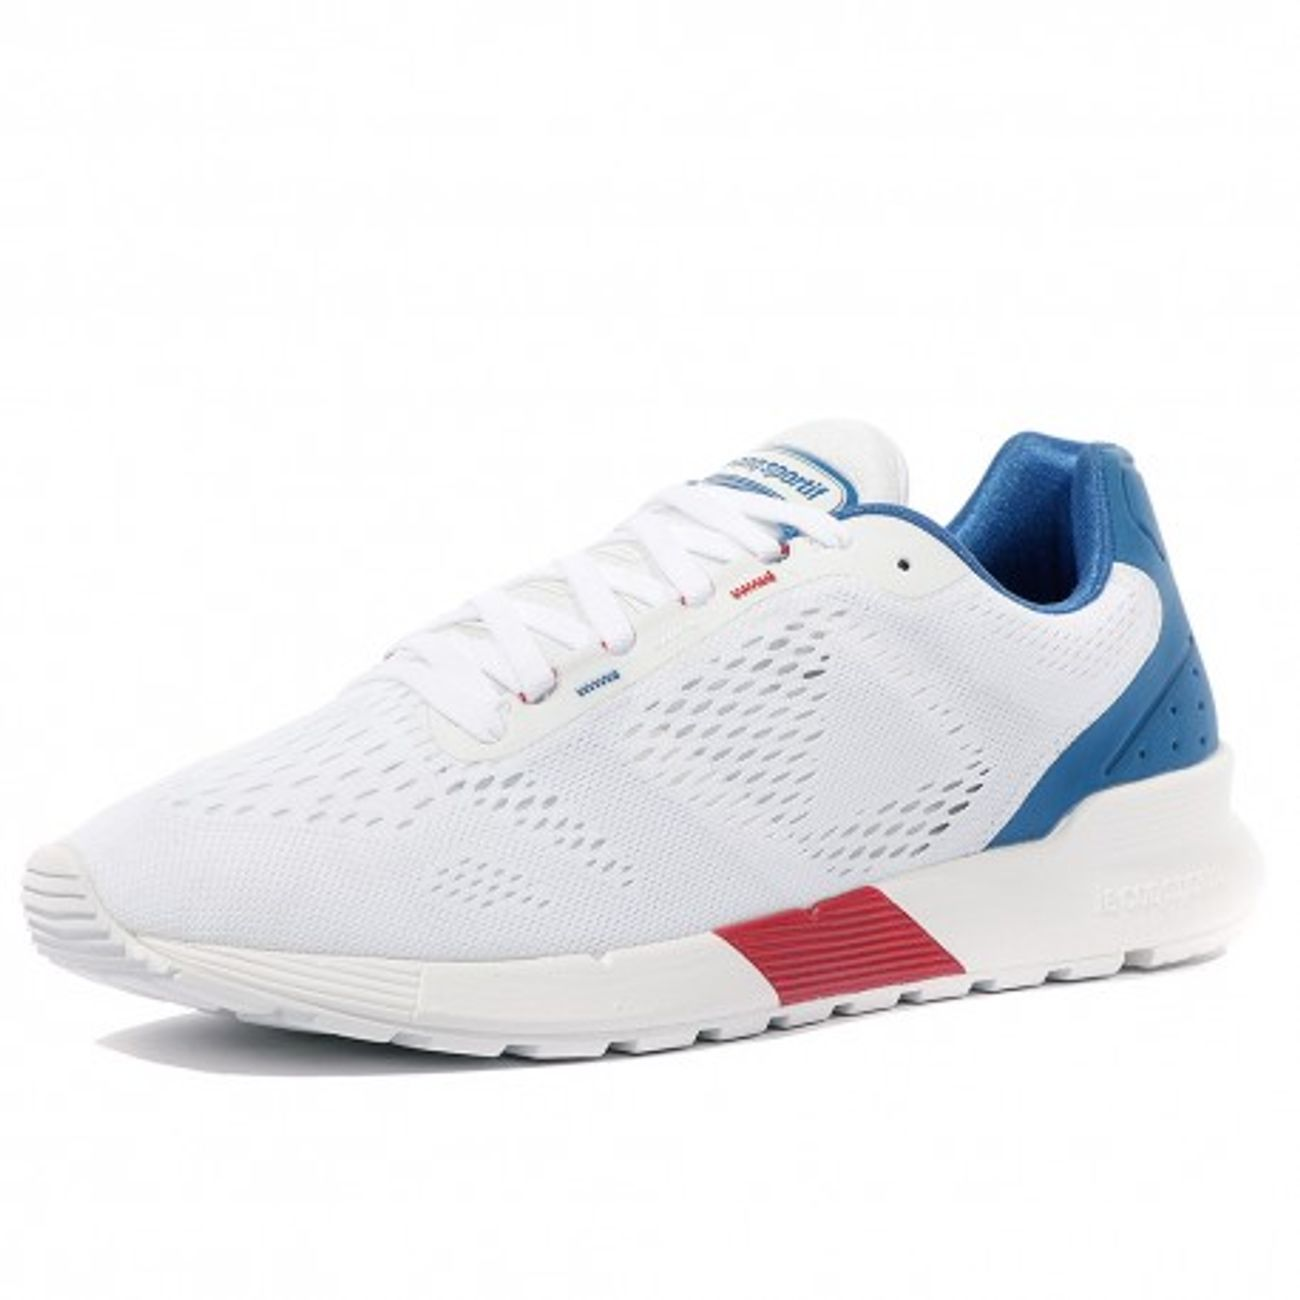 R Mesh Coq Sportif Chaussures Lcs Le Homme Pro Engineered Blanc Swddxtqan